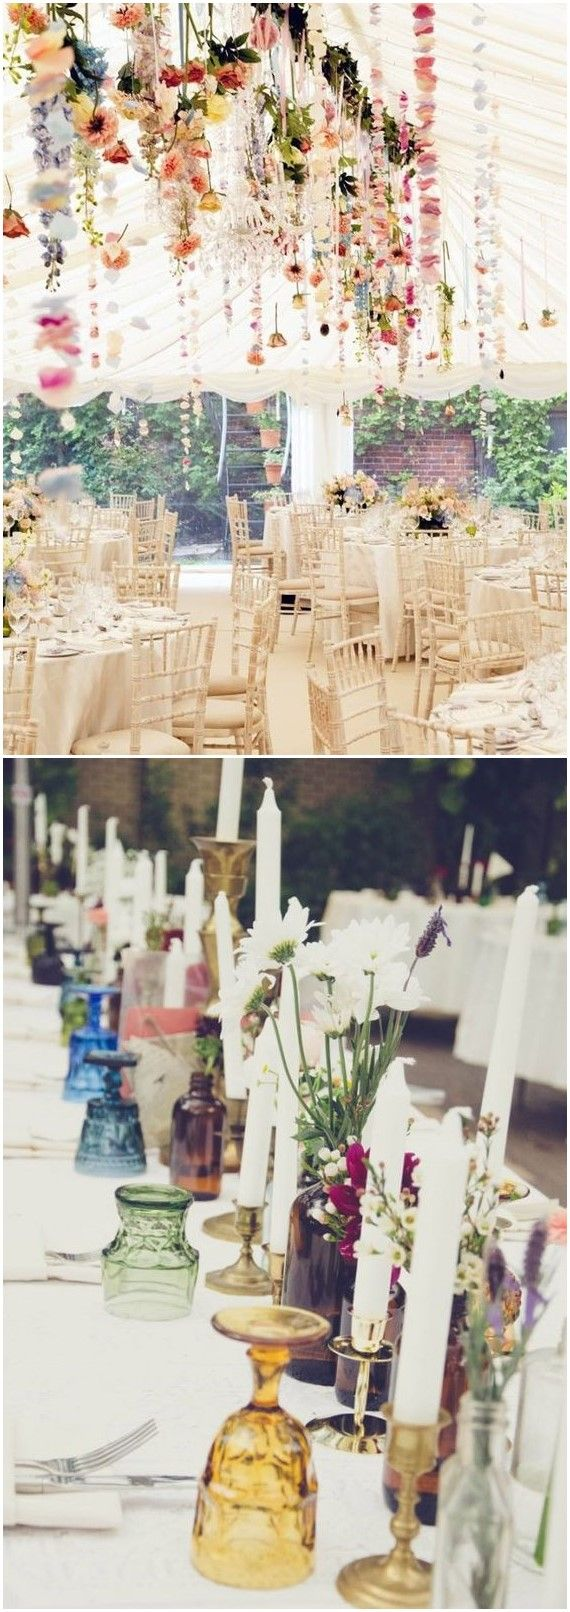 20 Gorgeous Boho Wedding Decor Ideas On Pinterest